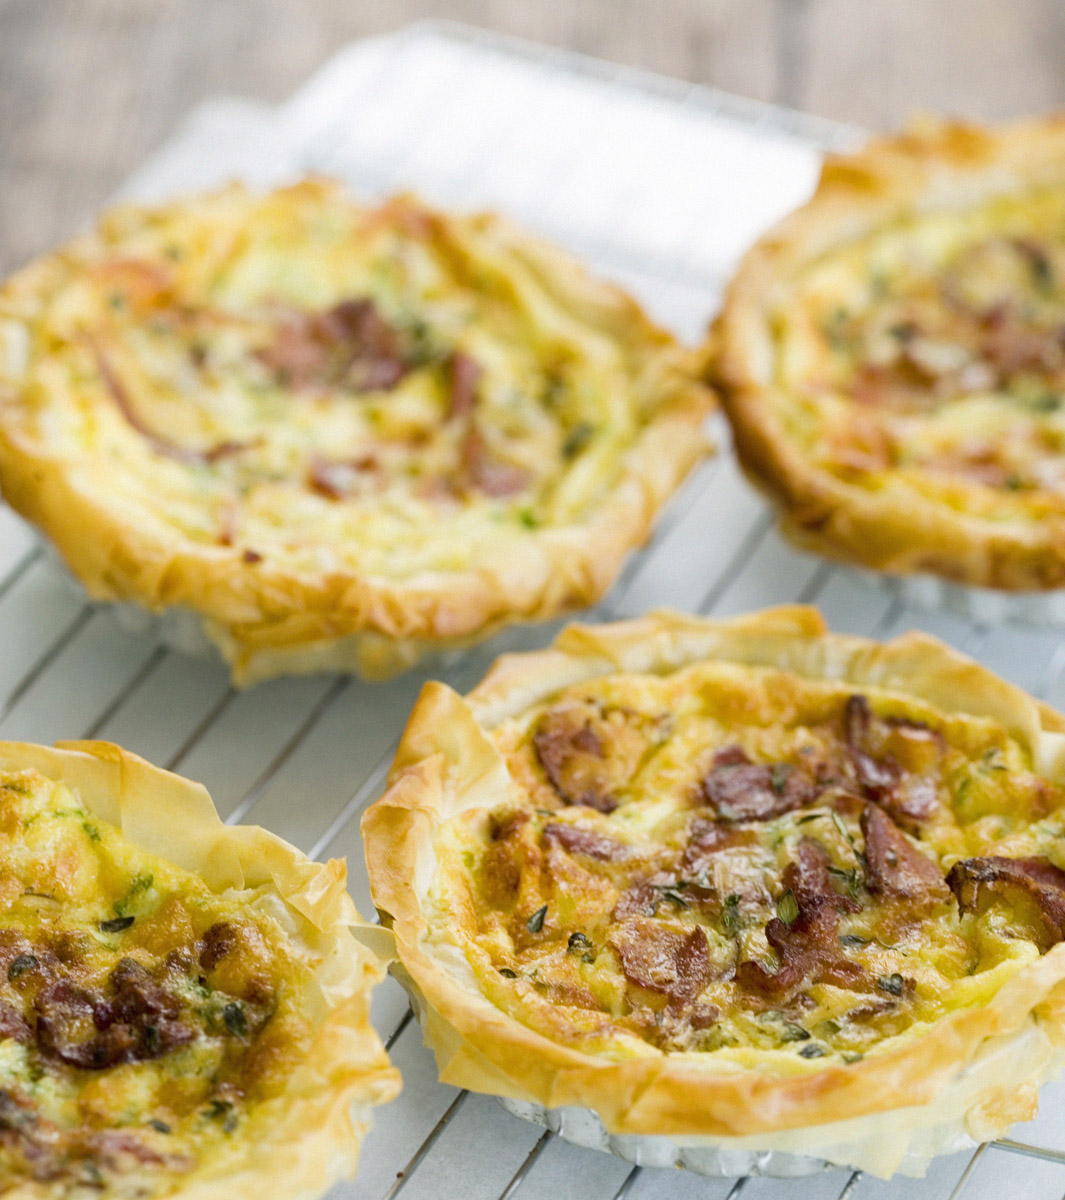 Love to Eat, Love 2 Eat, Mini Quiches, Not Frozen, Hade Made cooking, Mums Cooking